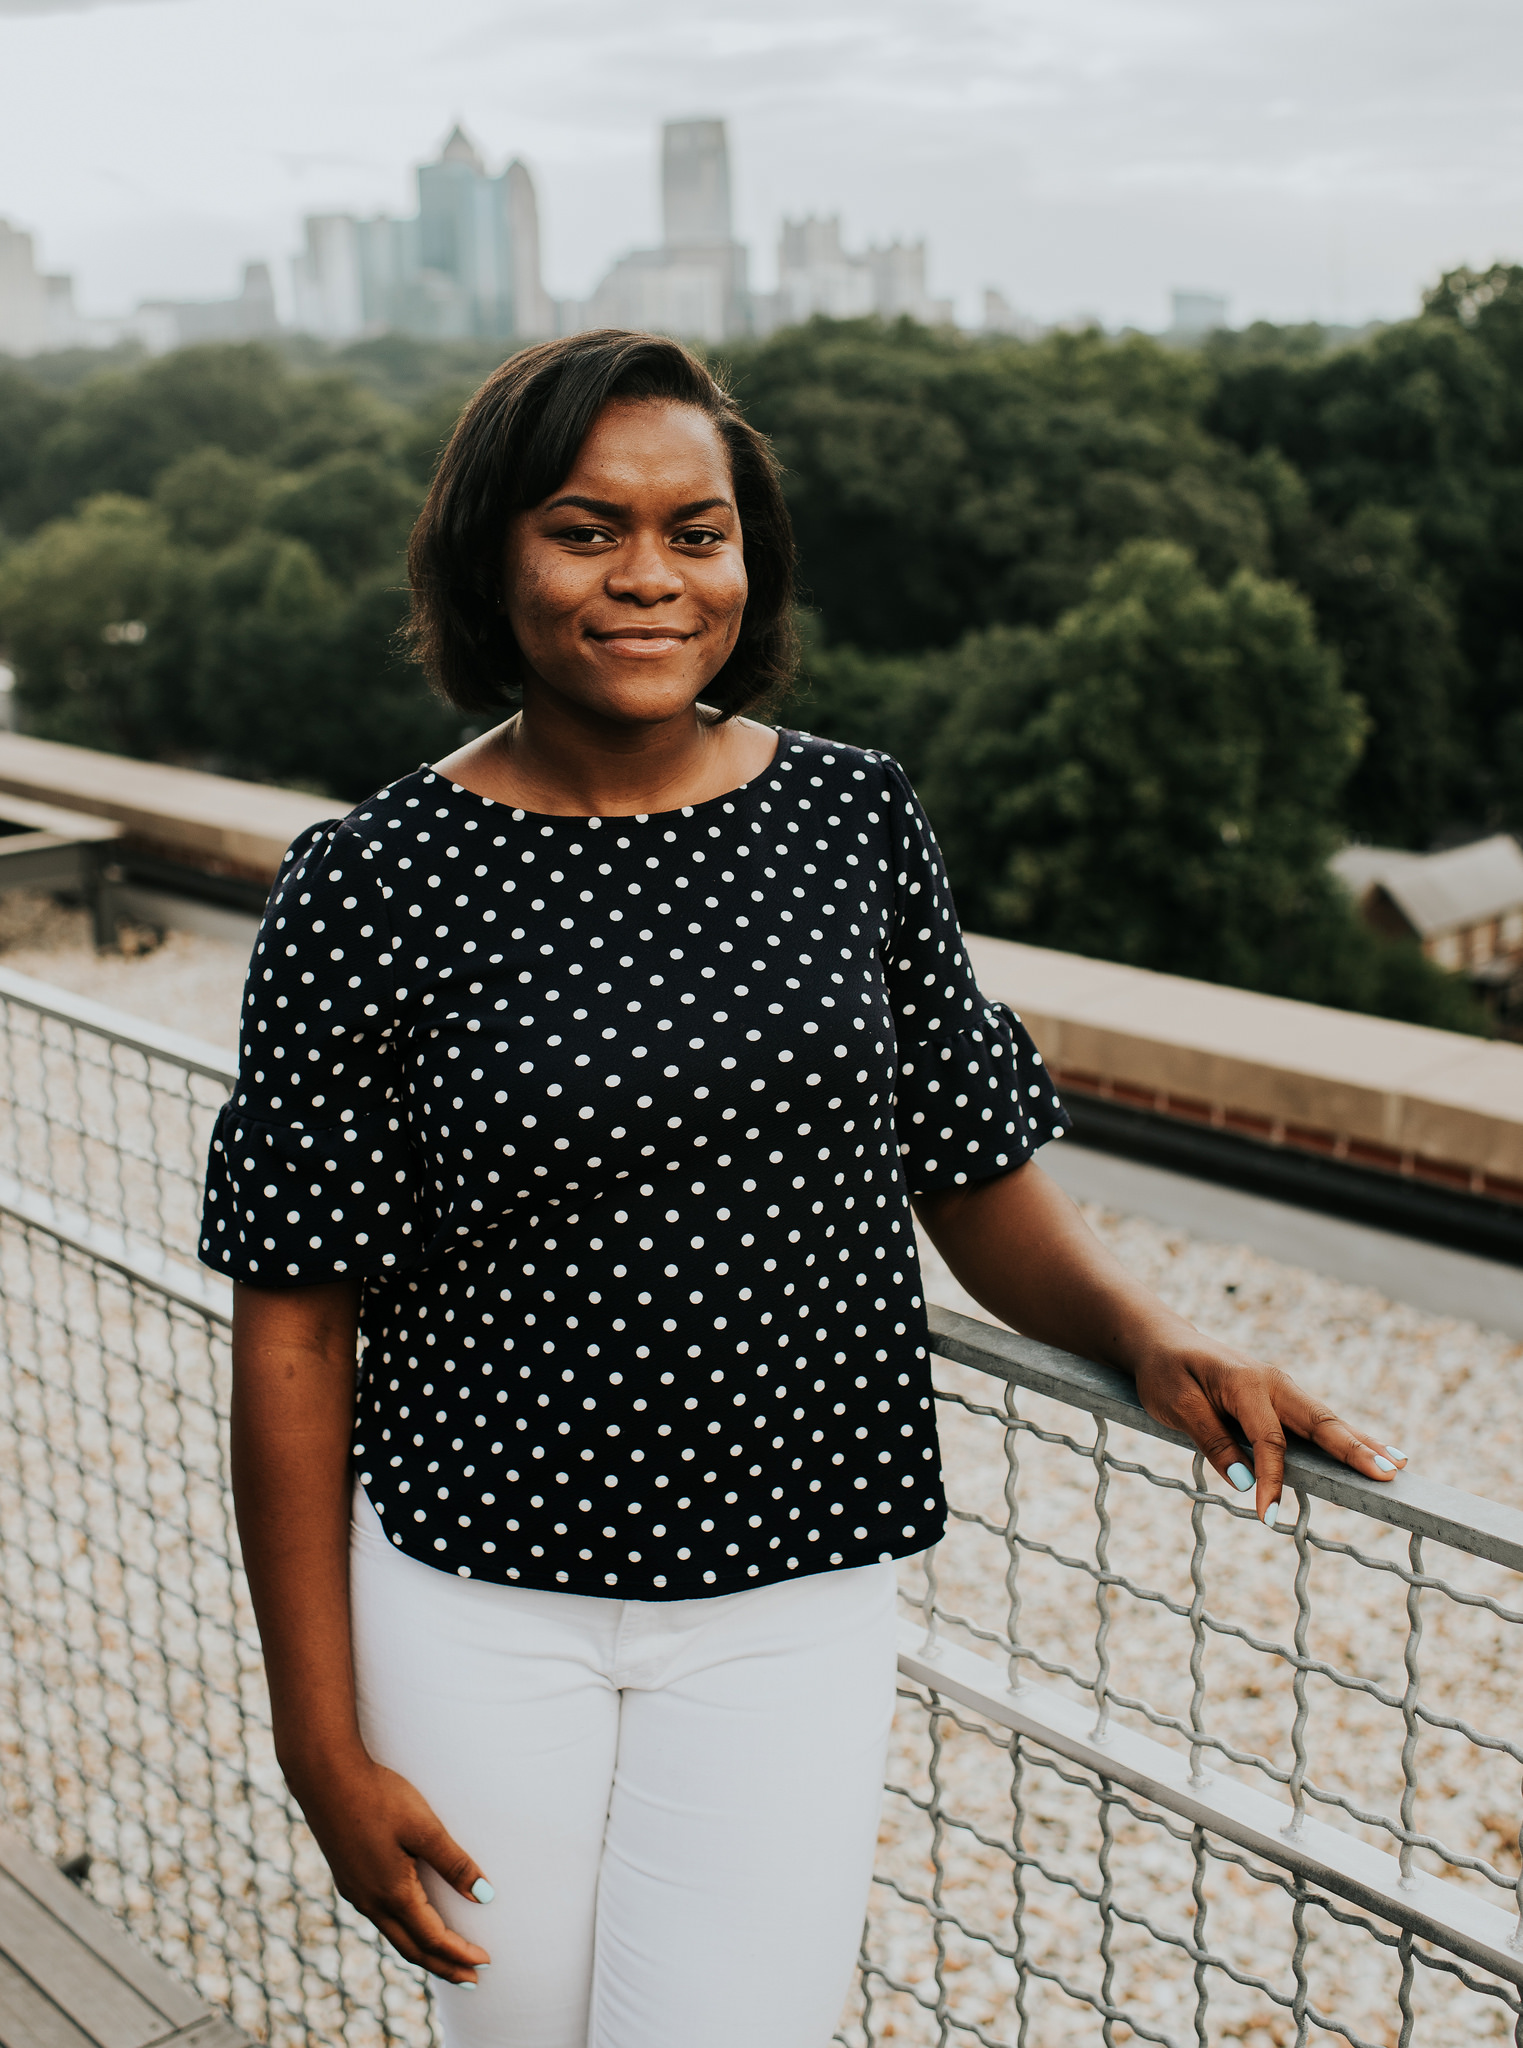 An interview with Angela: 2019 Chick-fil-A Fellow